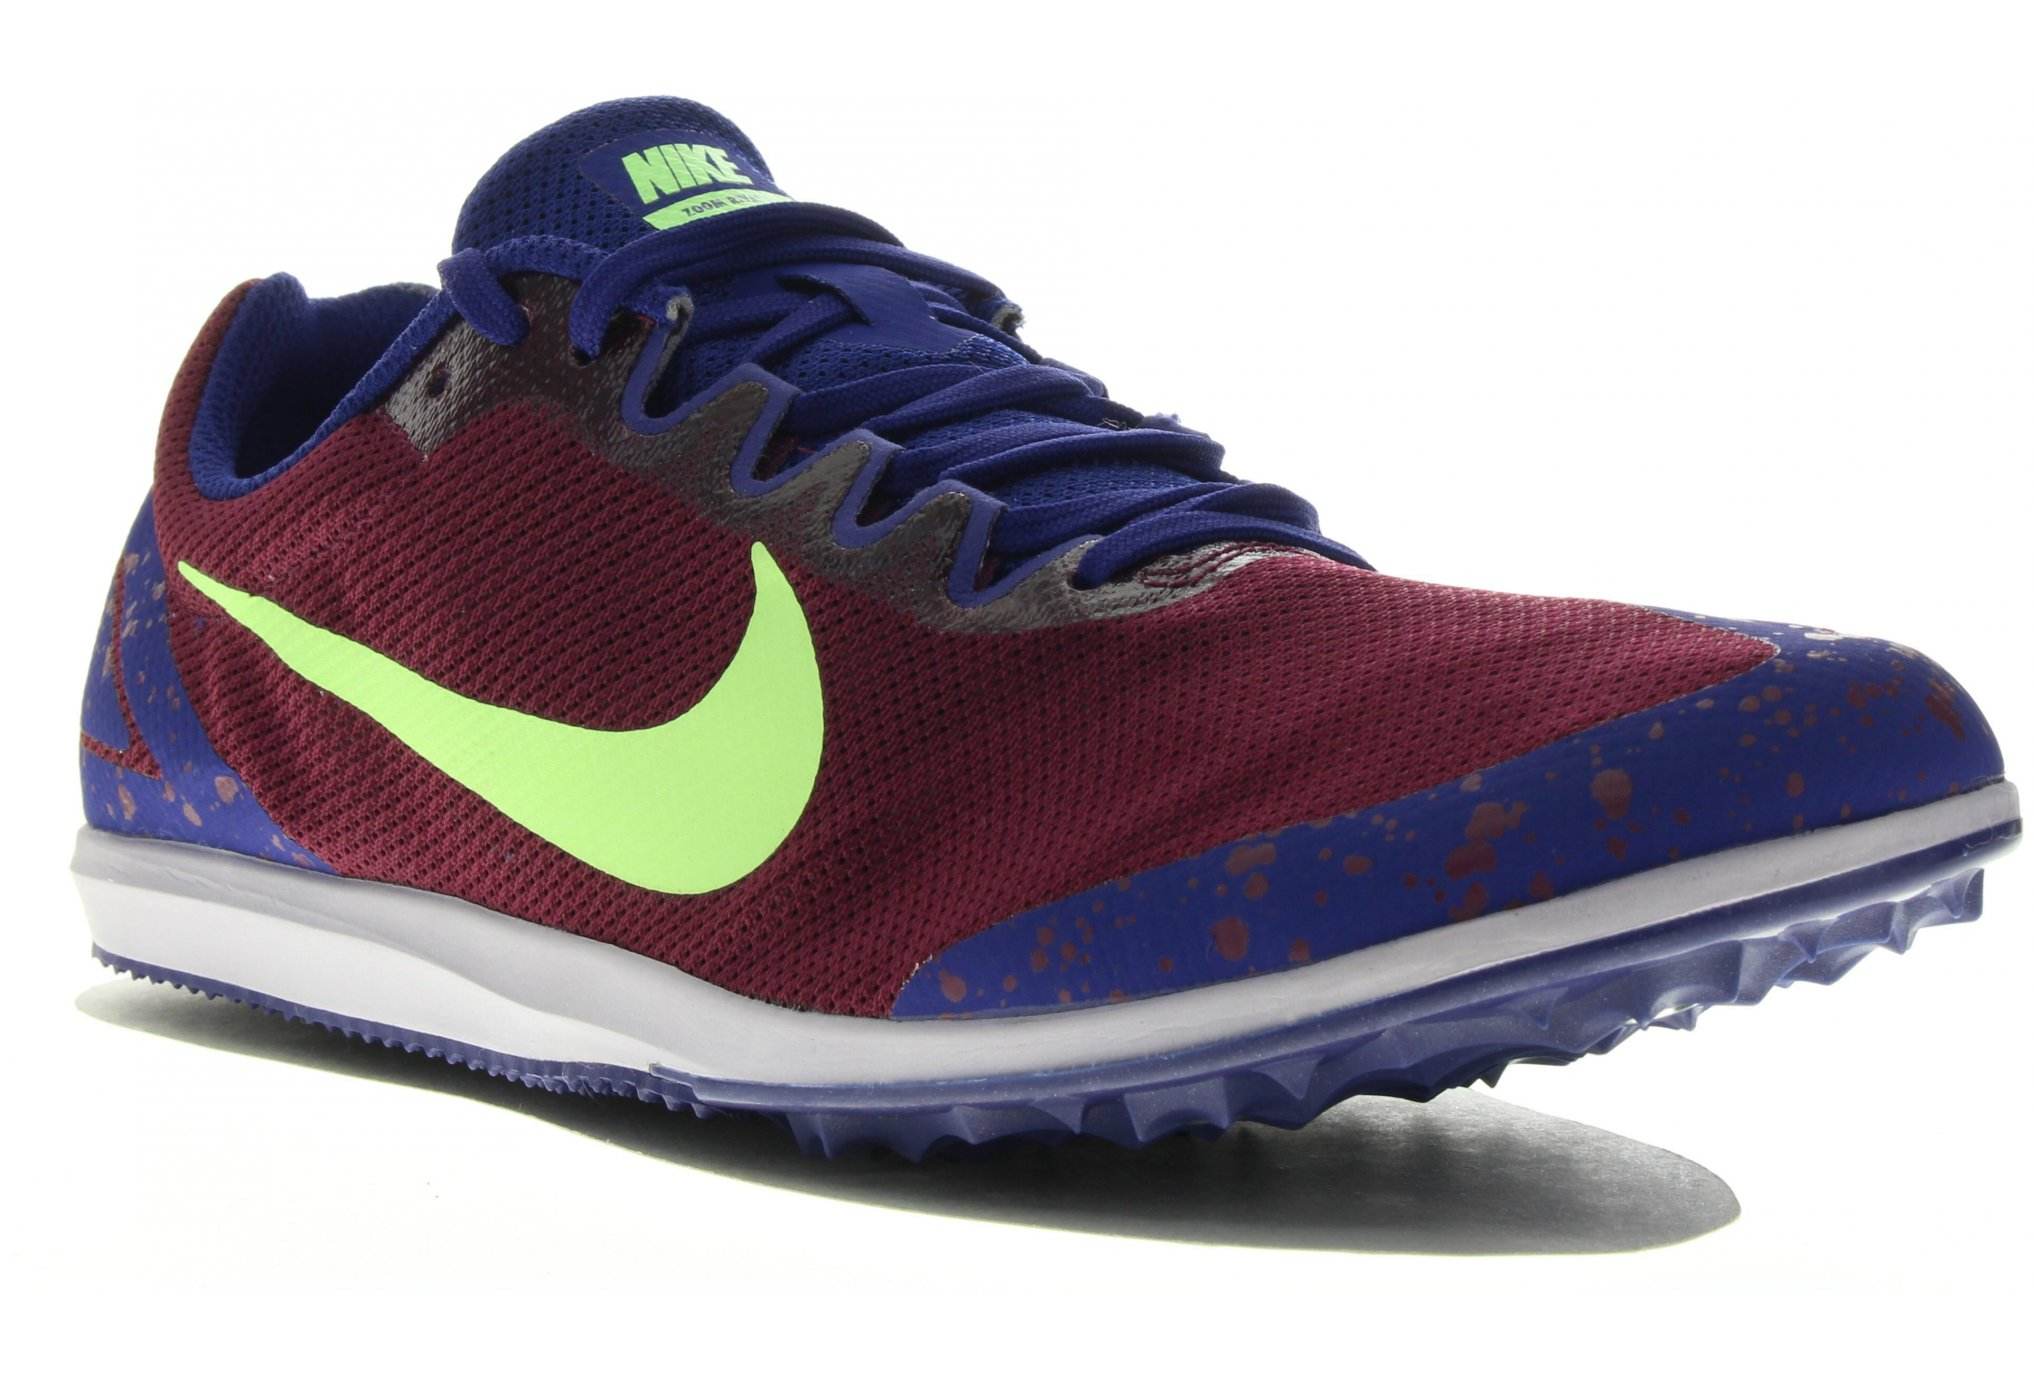 new style feb3f 34c5a Nike Zoom Rival D 10 M Chaussures homme